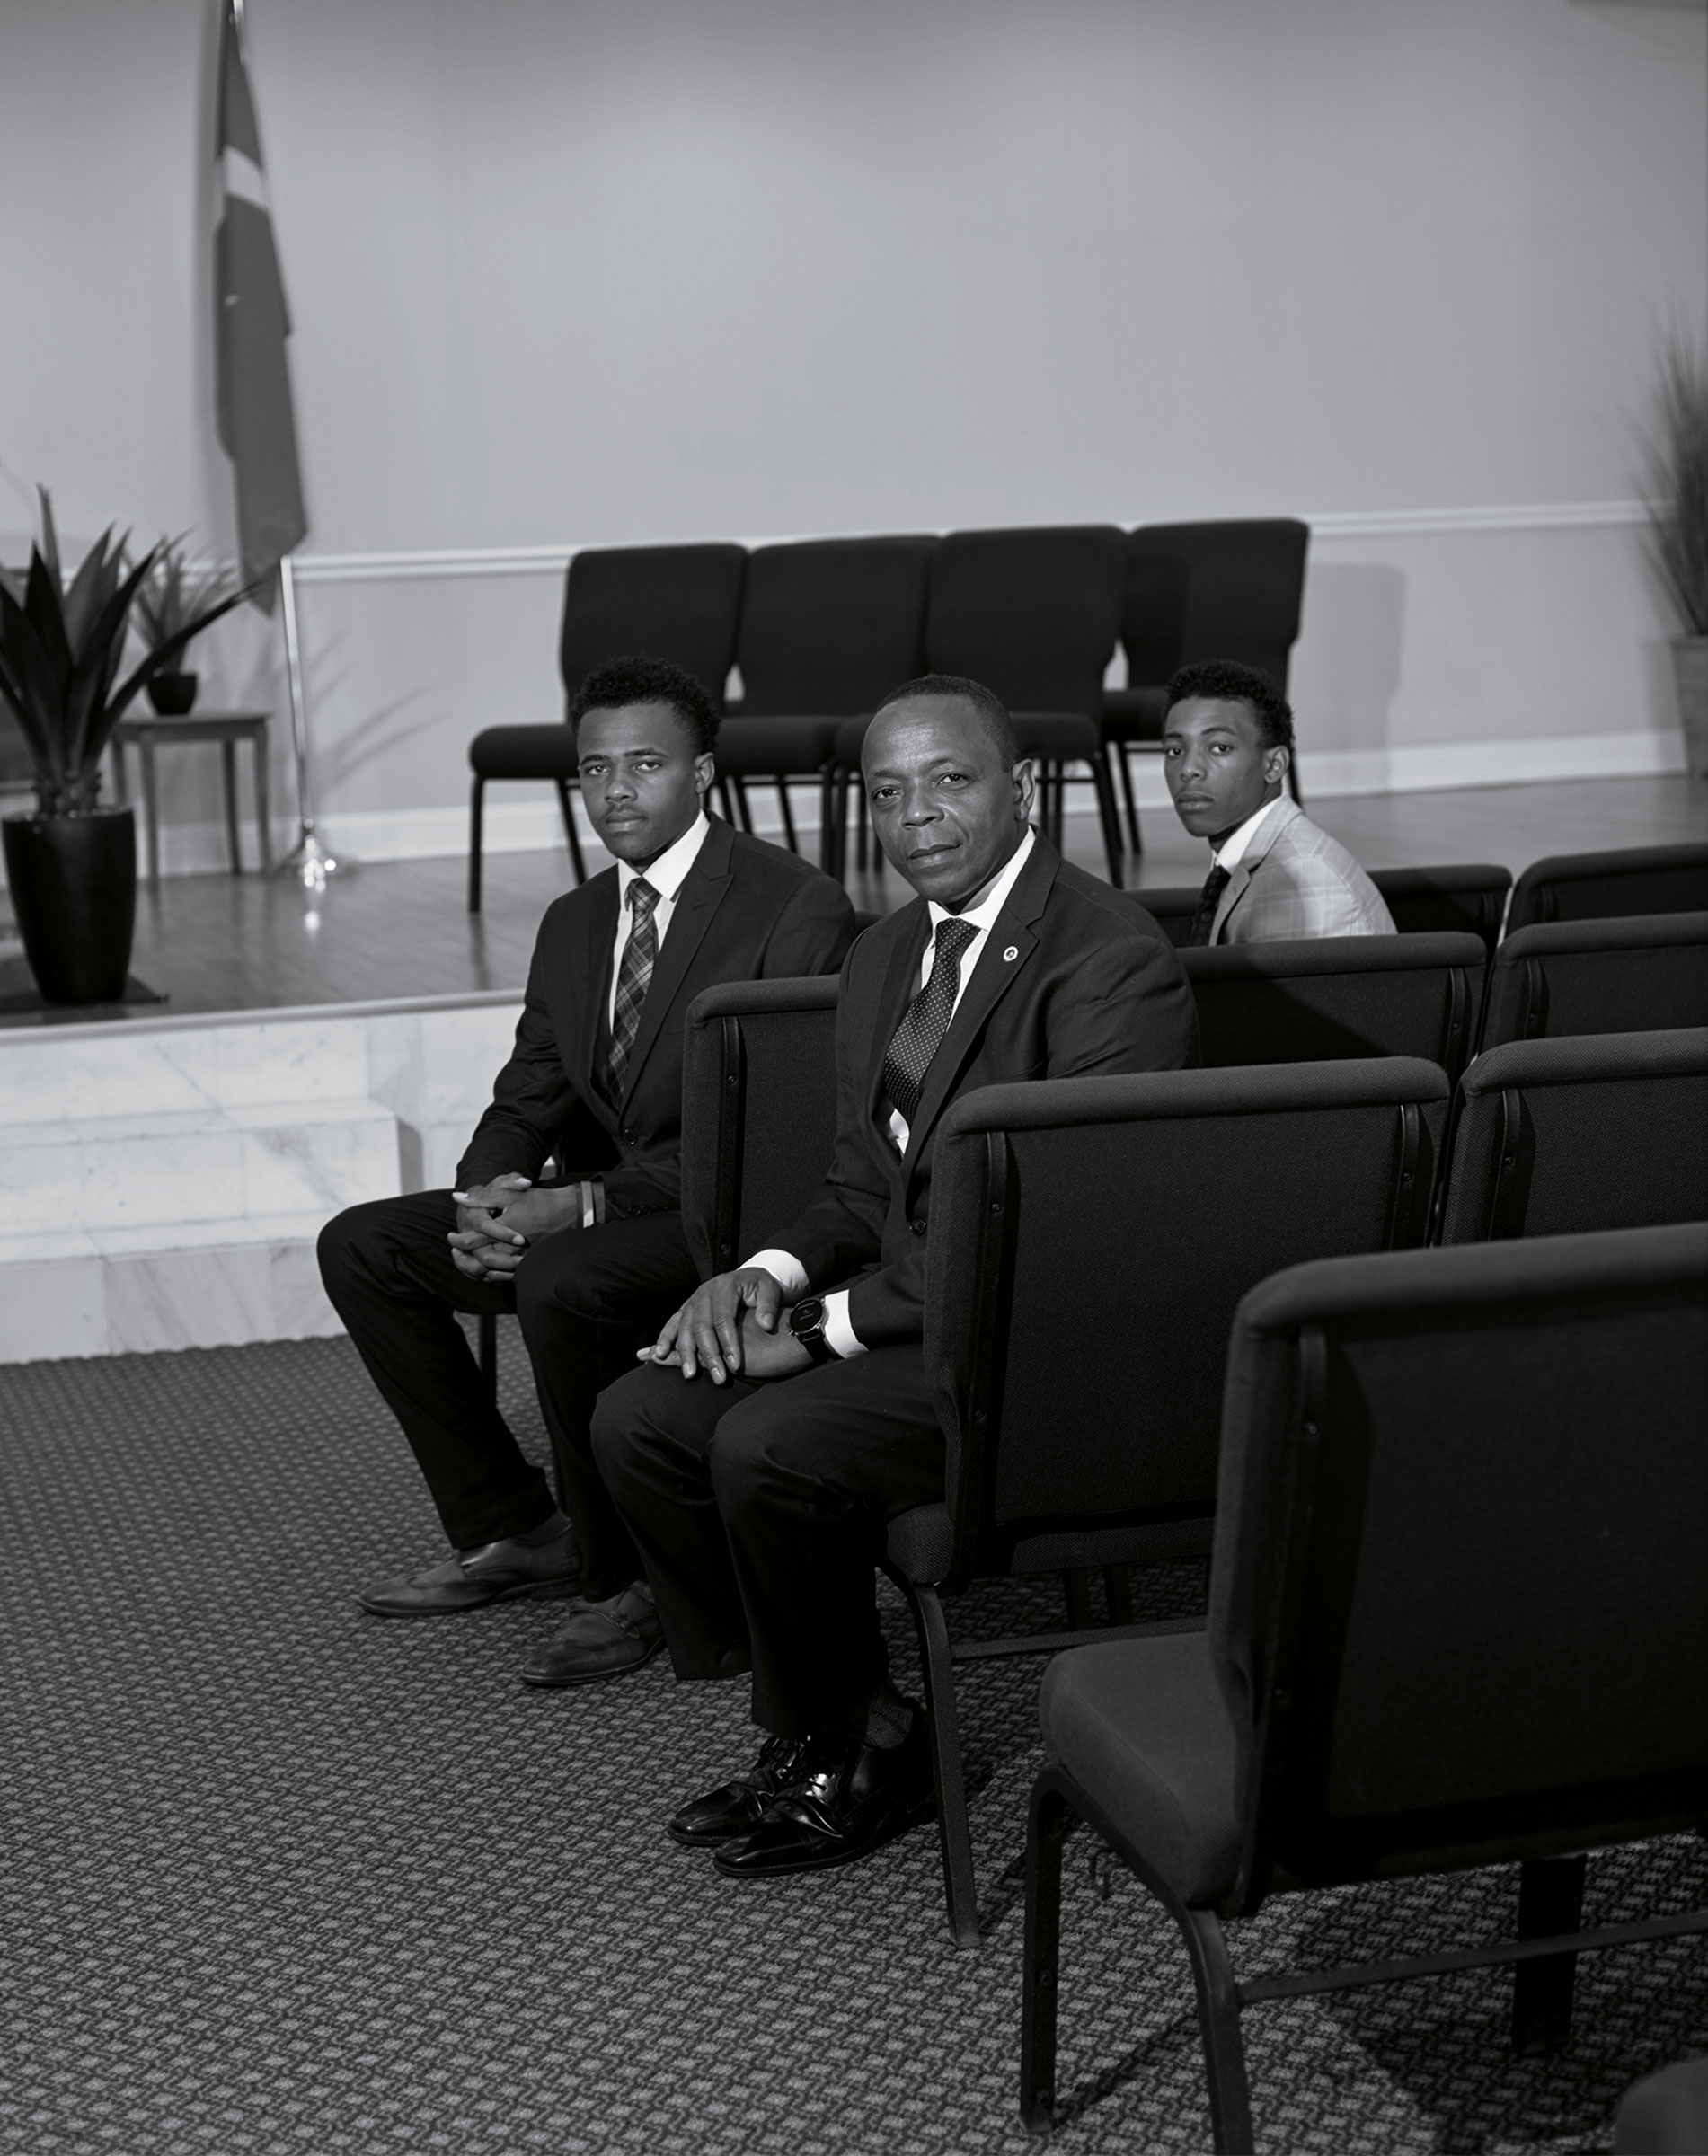 Wasim Muhammad and his sons Nafi and Haafiz.  It's Time to Radically Rethink Public Safety in America,  Aug. 17 issue.